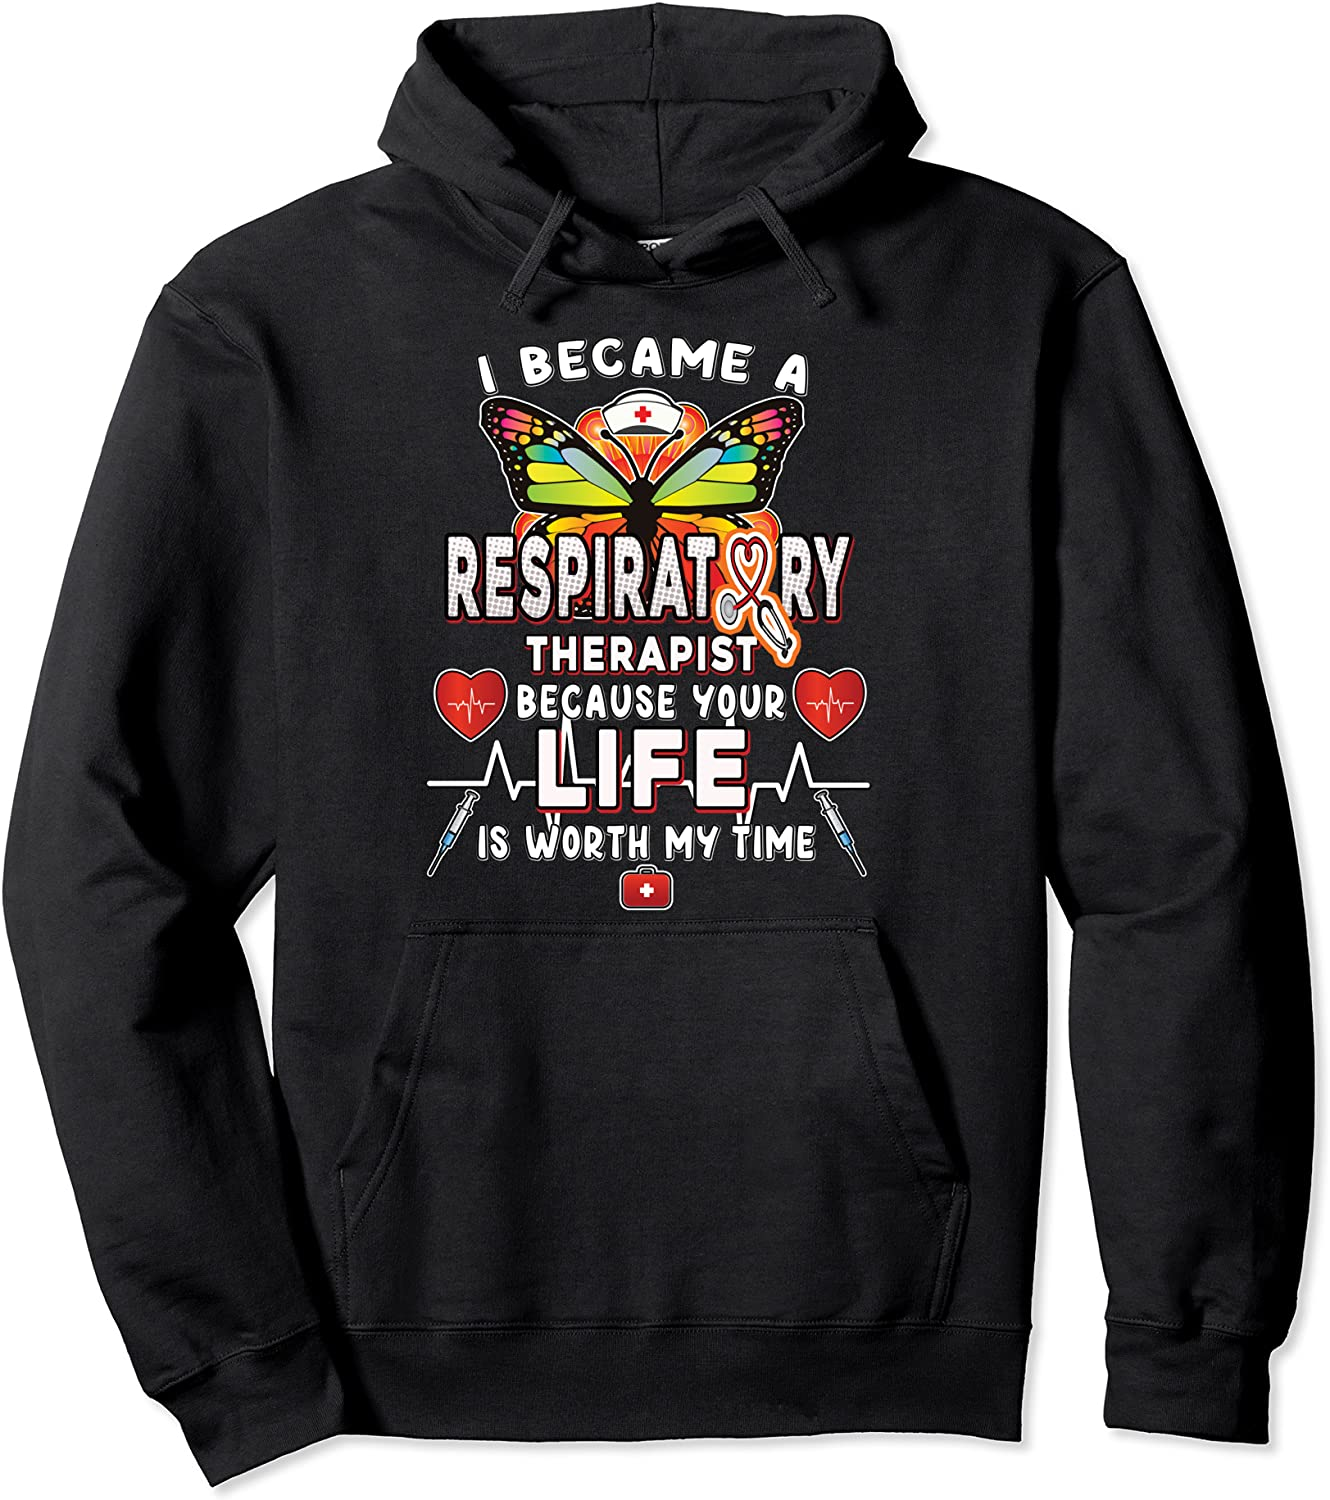 Respiratory Therapist Because Your セール特別価格 Life Worth My 推奨 Is Time Pullove